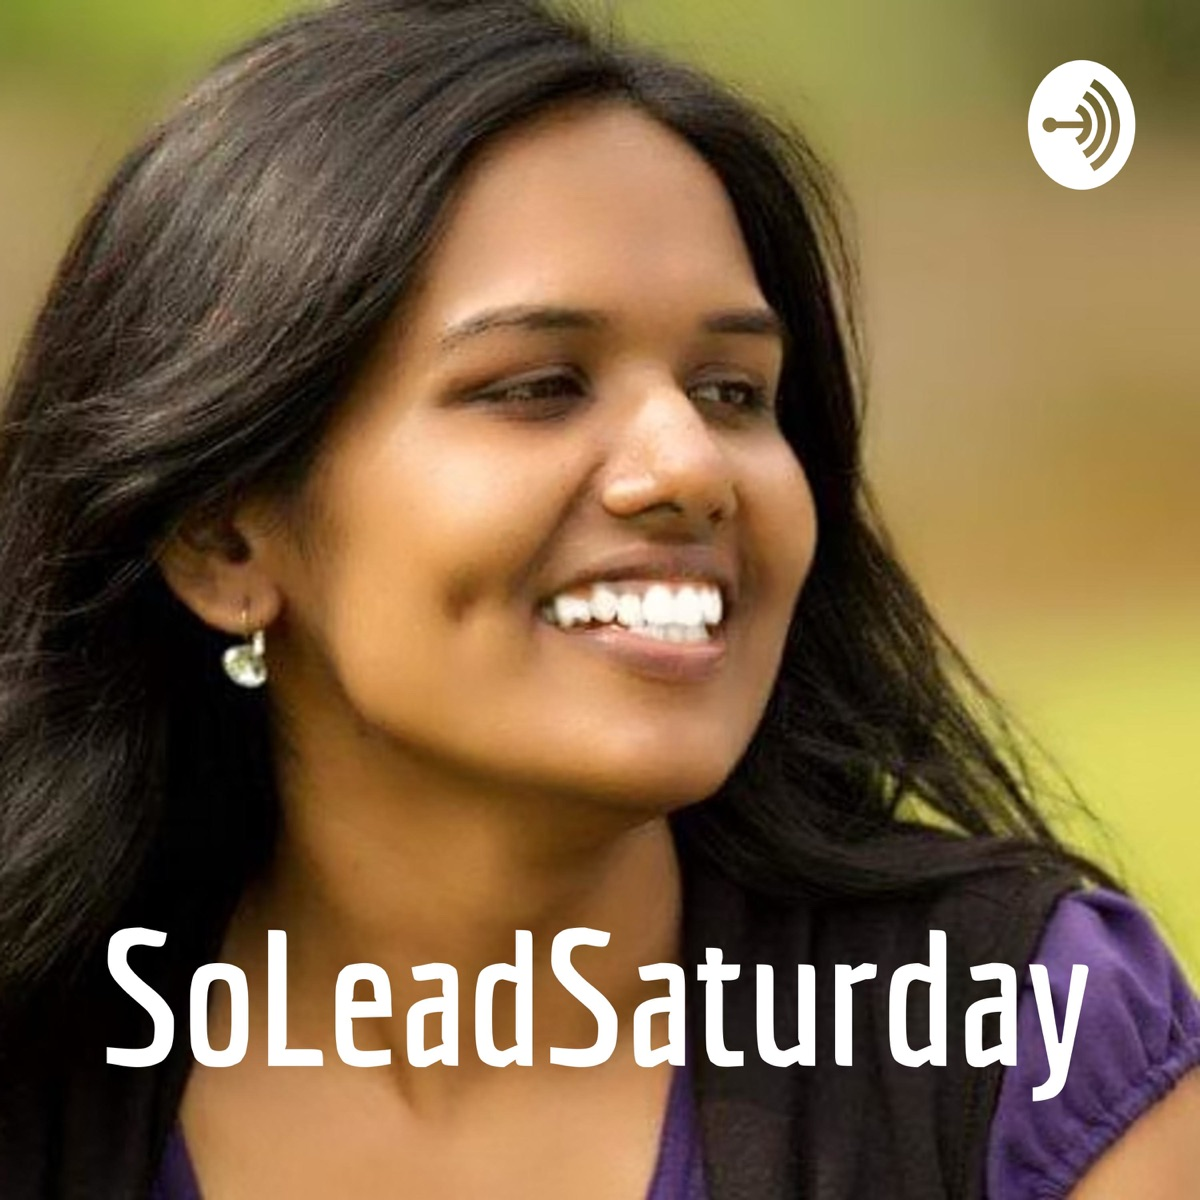 SoLeadSaturday